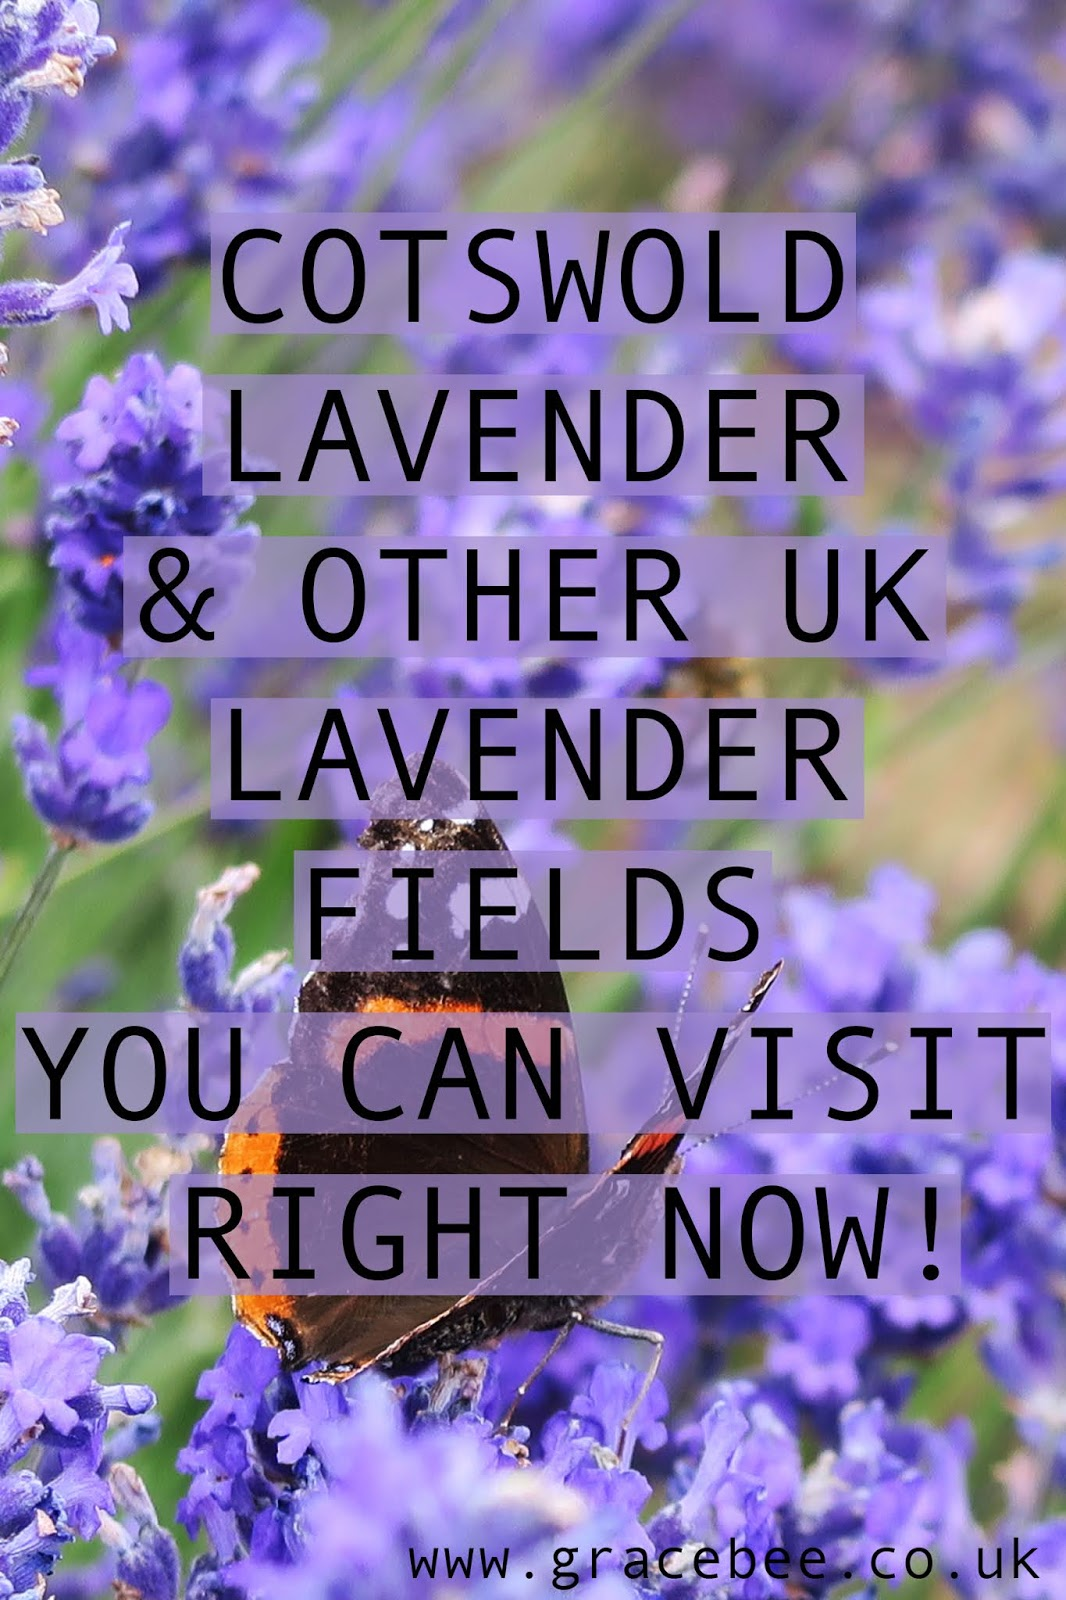 a Pin for pinterest. The text reads -  COTSWOLD LAVENDER & OTHER UK LAVENDER FIELDS YOU CAN VISIT RIGHT NOW!